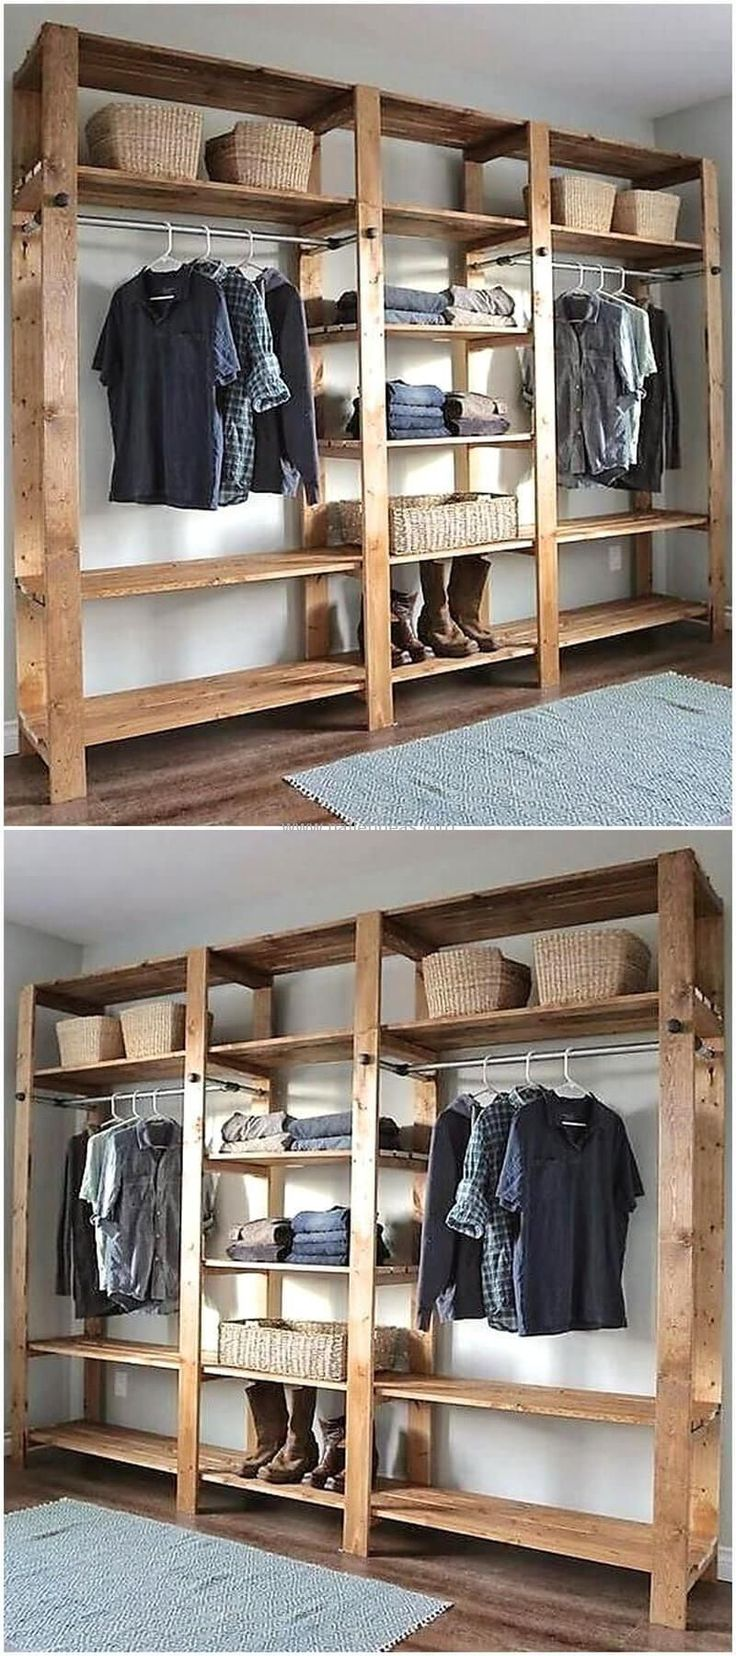 pallets wooden closet...we could build this into the existing closet. And it's pretty enough the closet doesn't need doors.